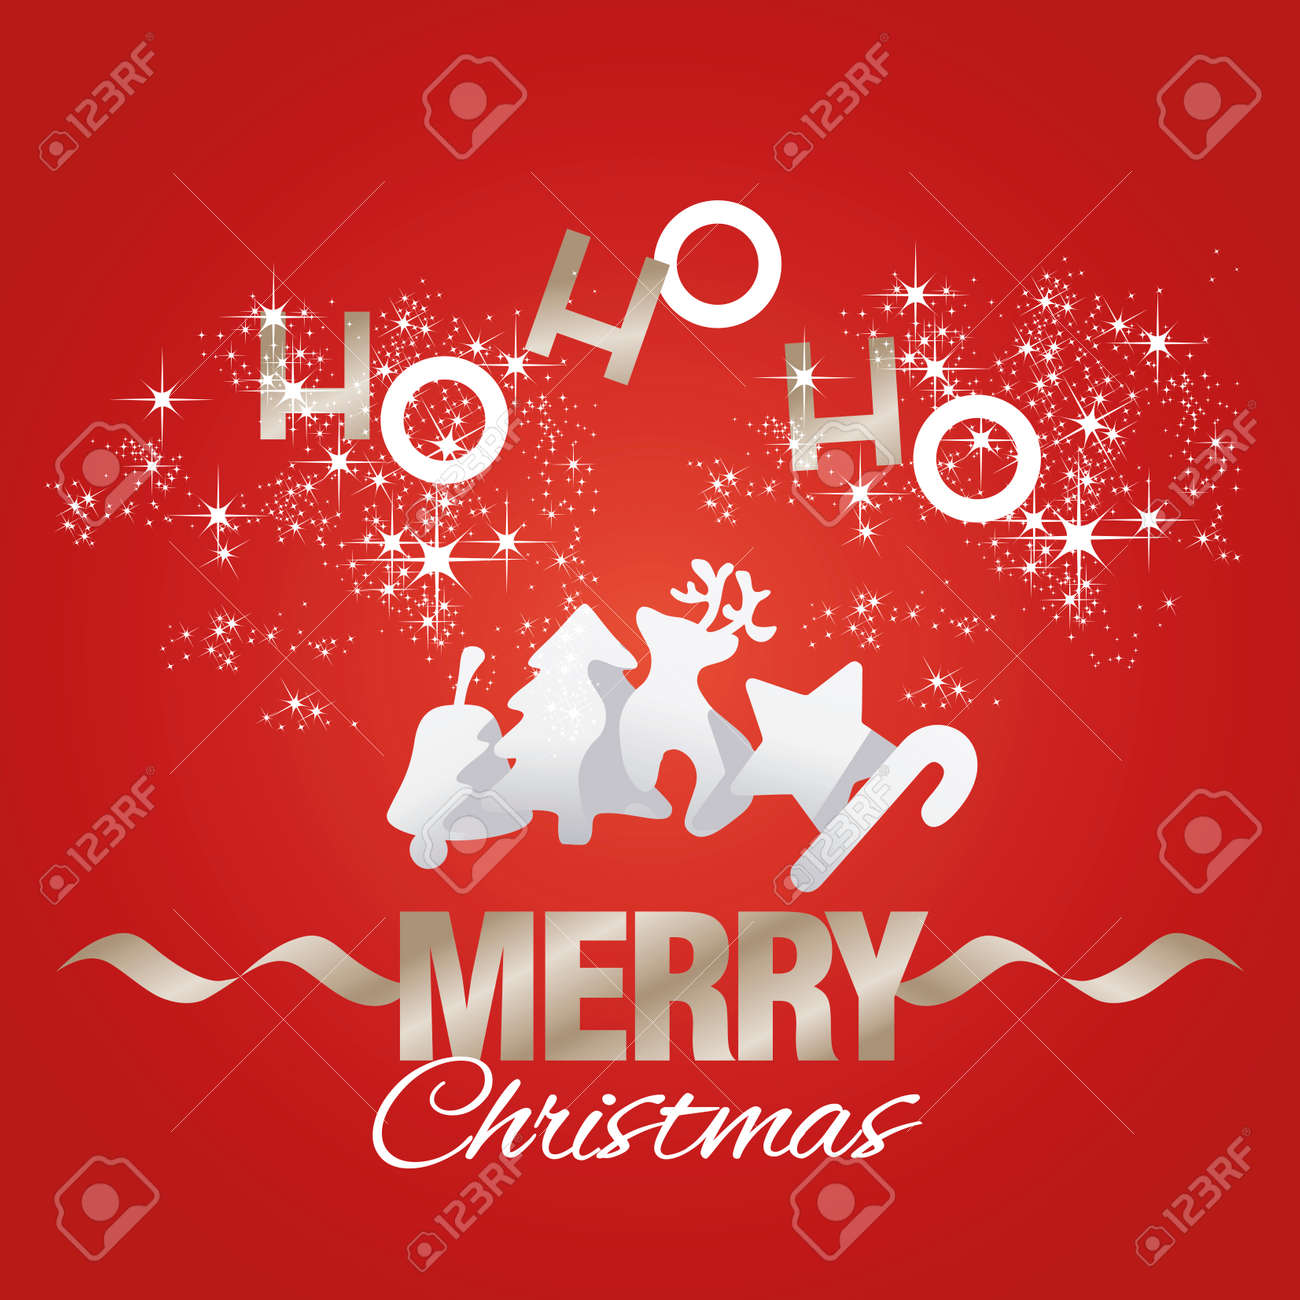 Ho-ho-ho Merry Christmas Elements Red Vector Royalty Free Cliparts ...